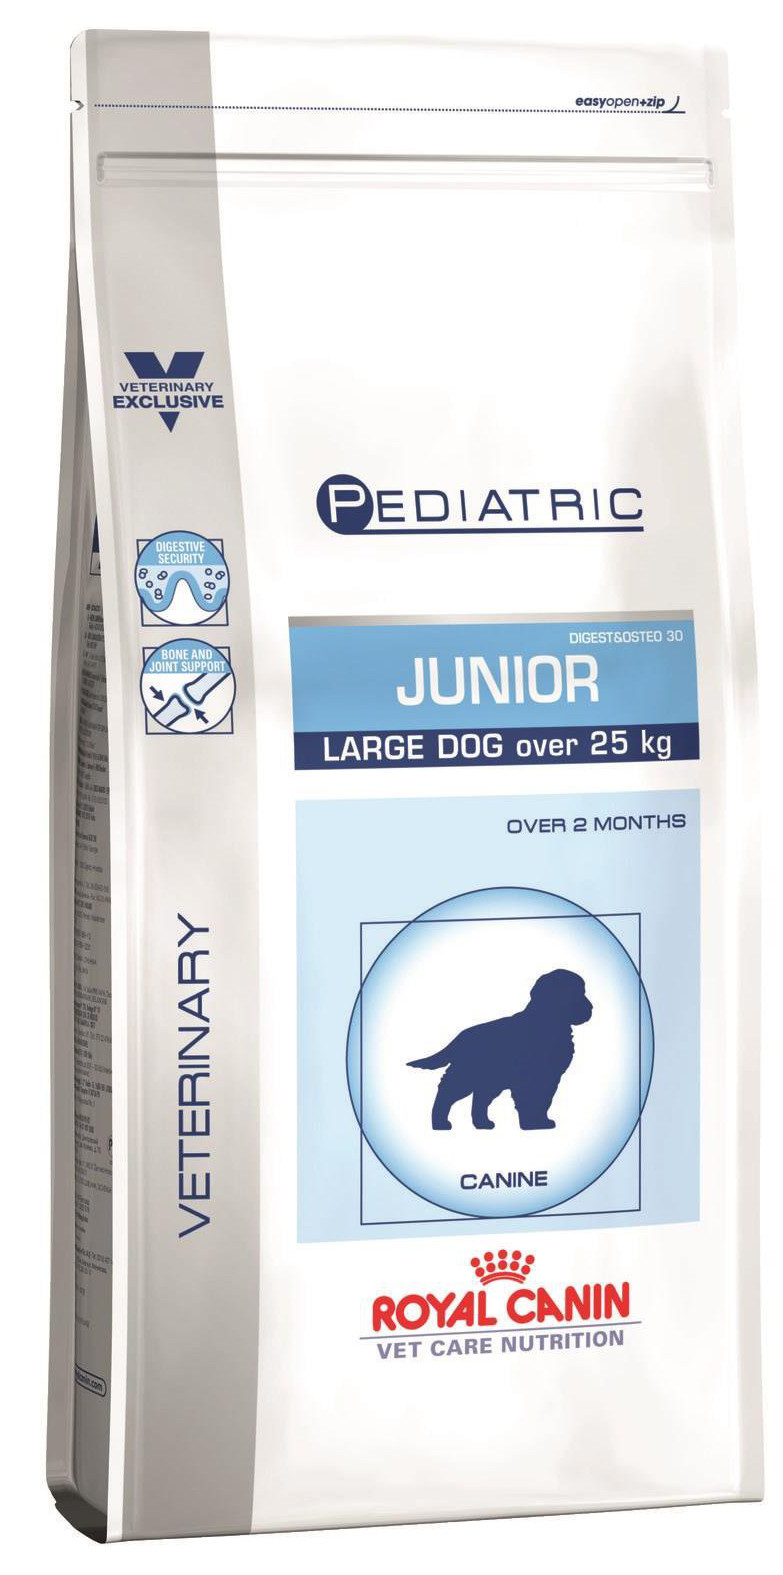 Royal Canin Pediatric Junior Large Dog 14kg.